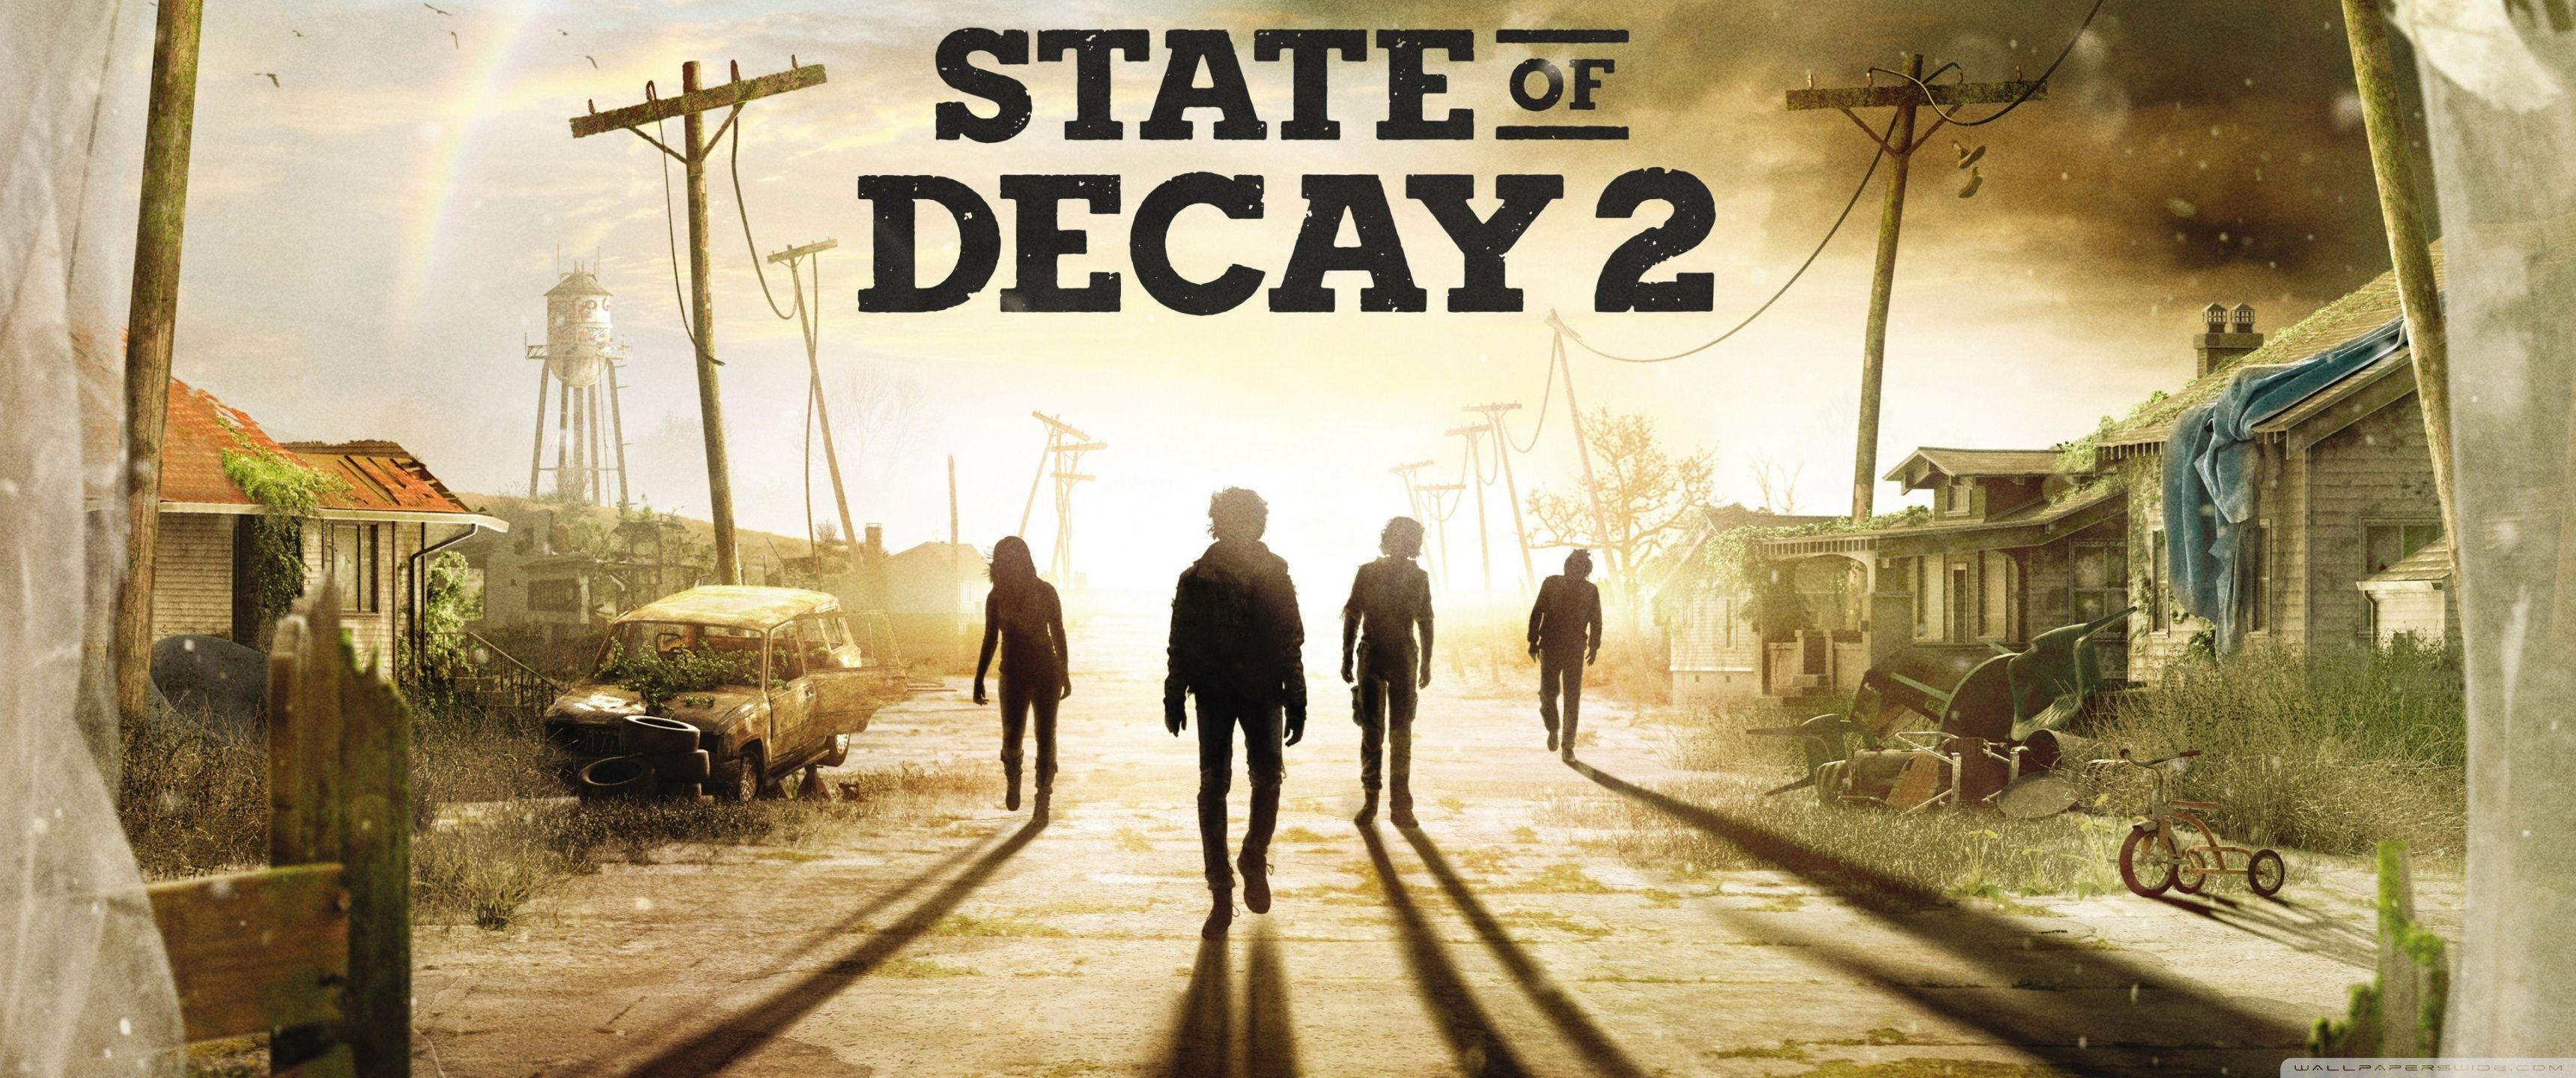 State Of Decay 2 Wallpapers Wallpaper Cave